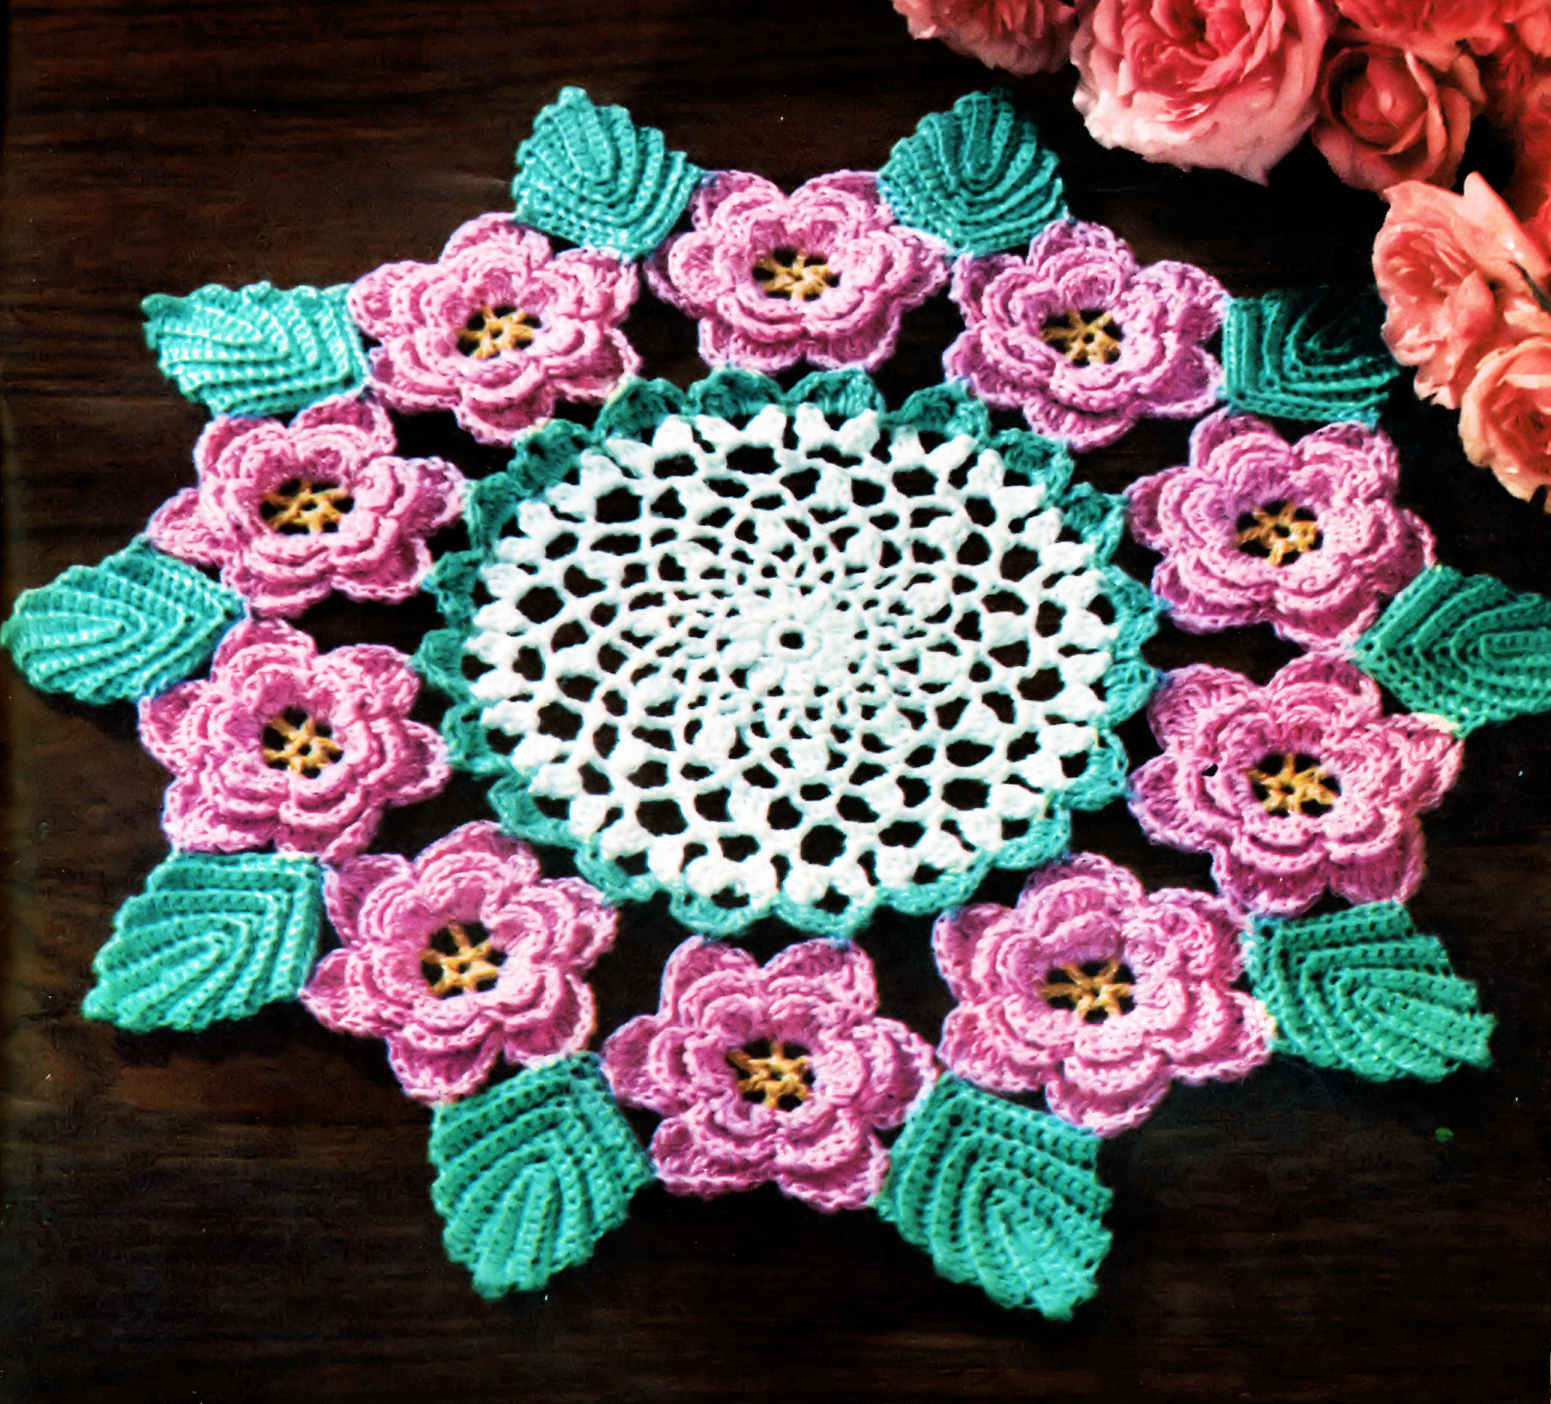 Crochet Filet Rose Square Doily Free Pattern - Associated Content